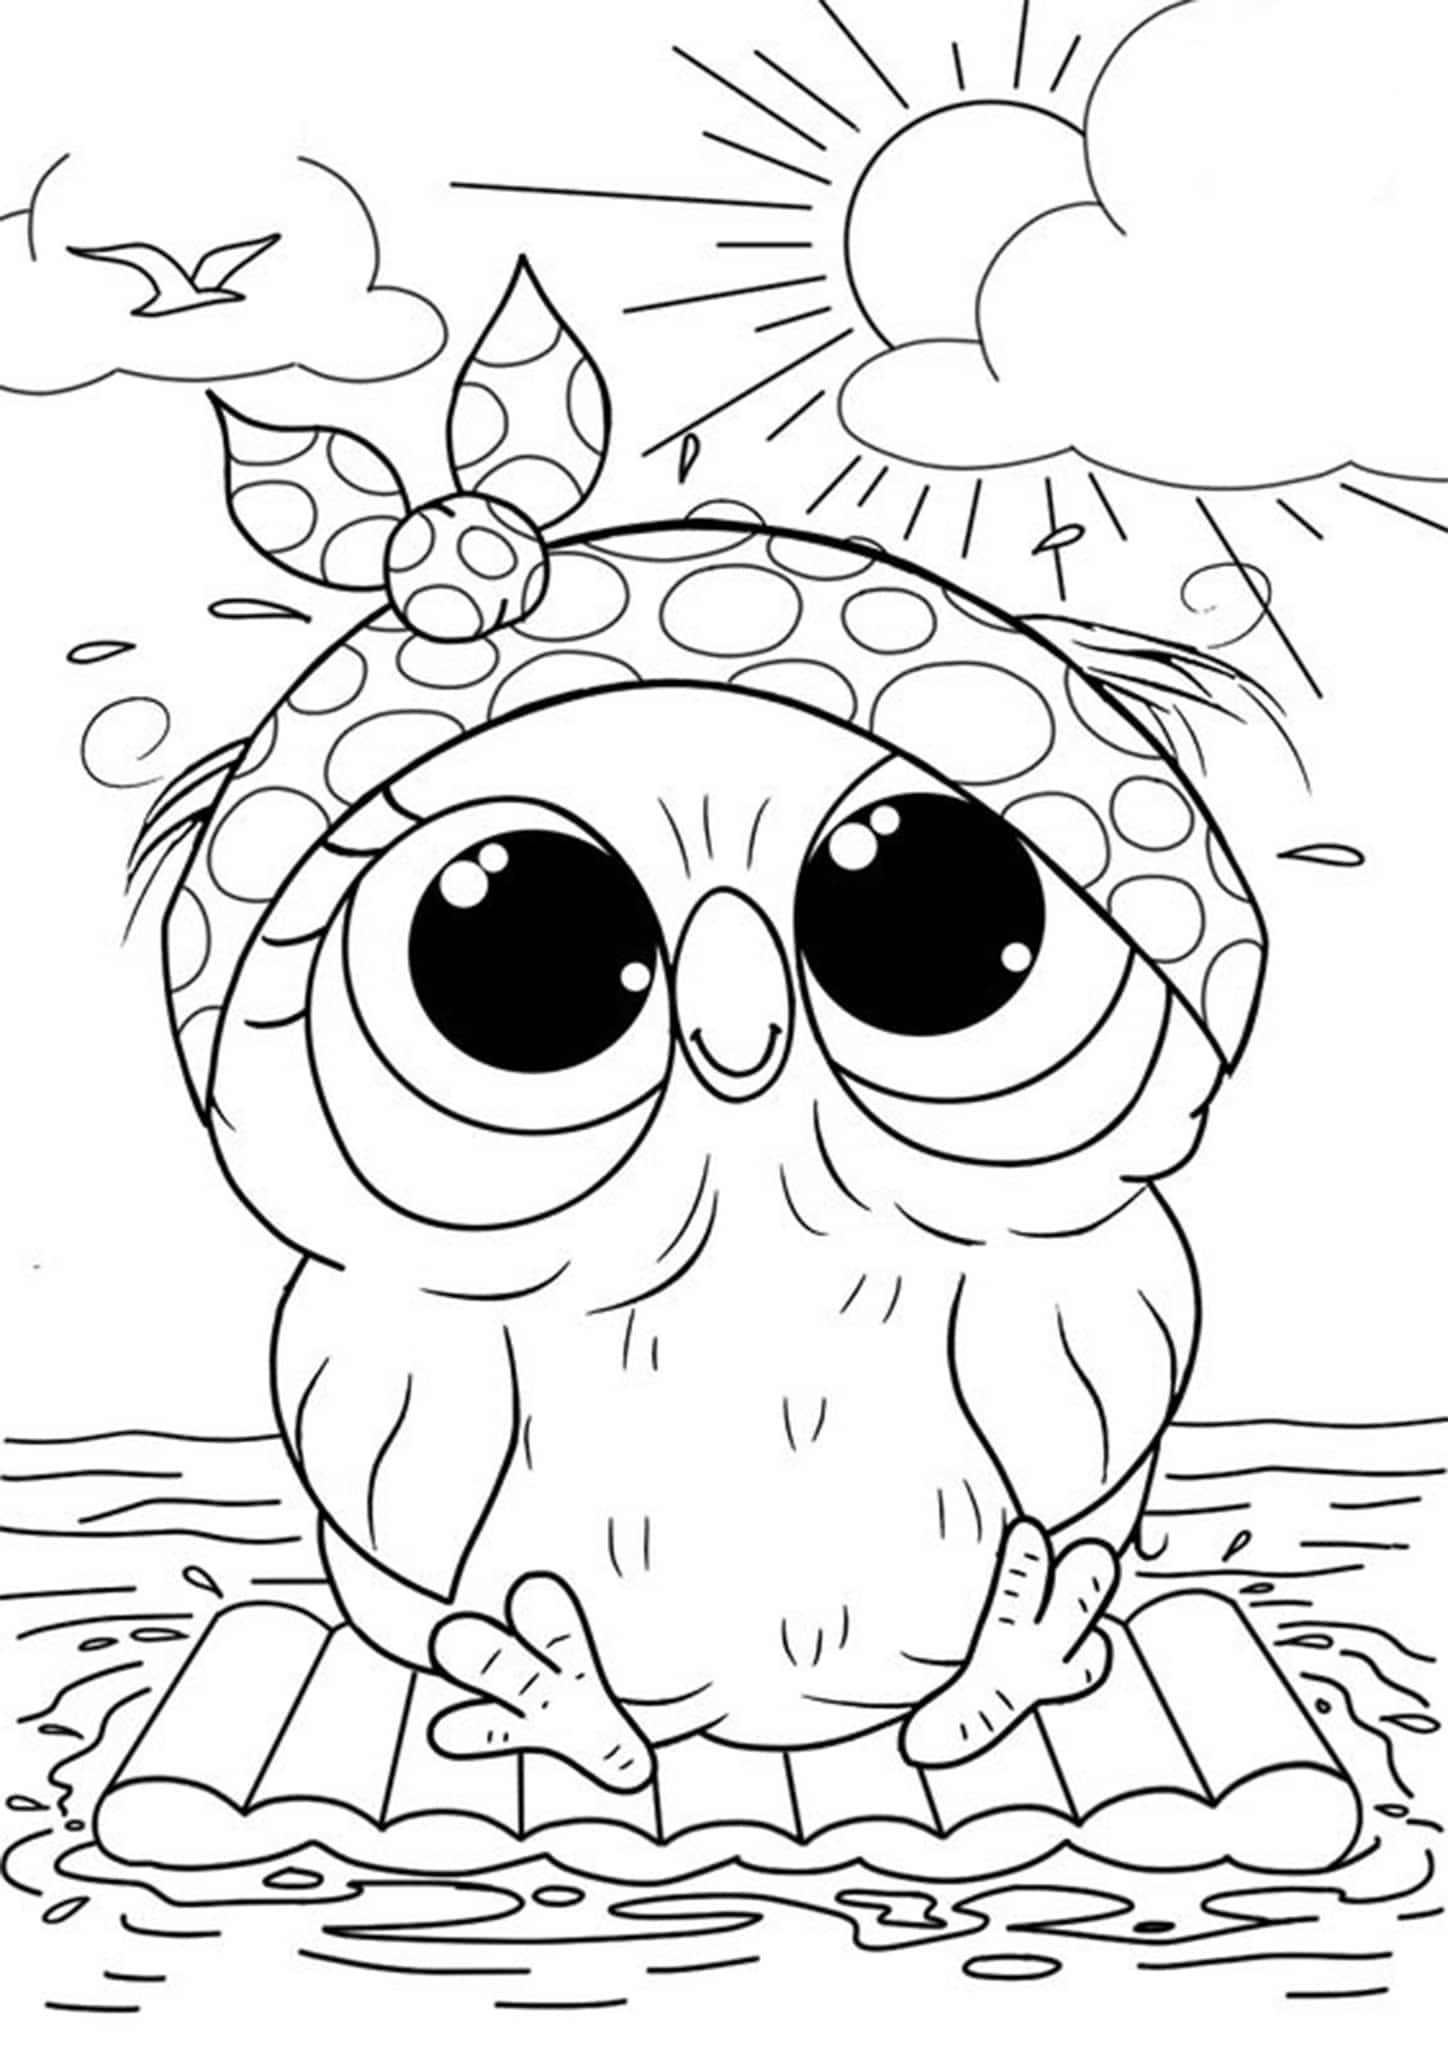 a coloring picture free easy to print owl coloring pages tulamama a coloring picture